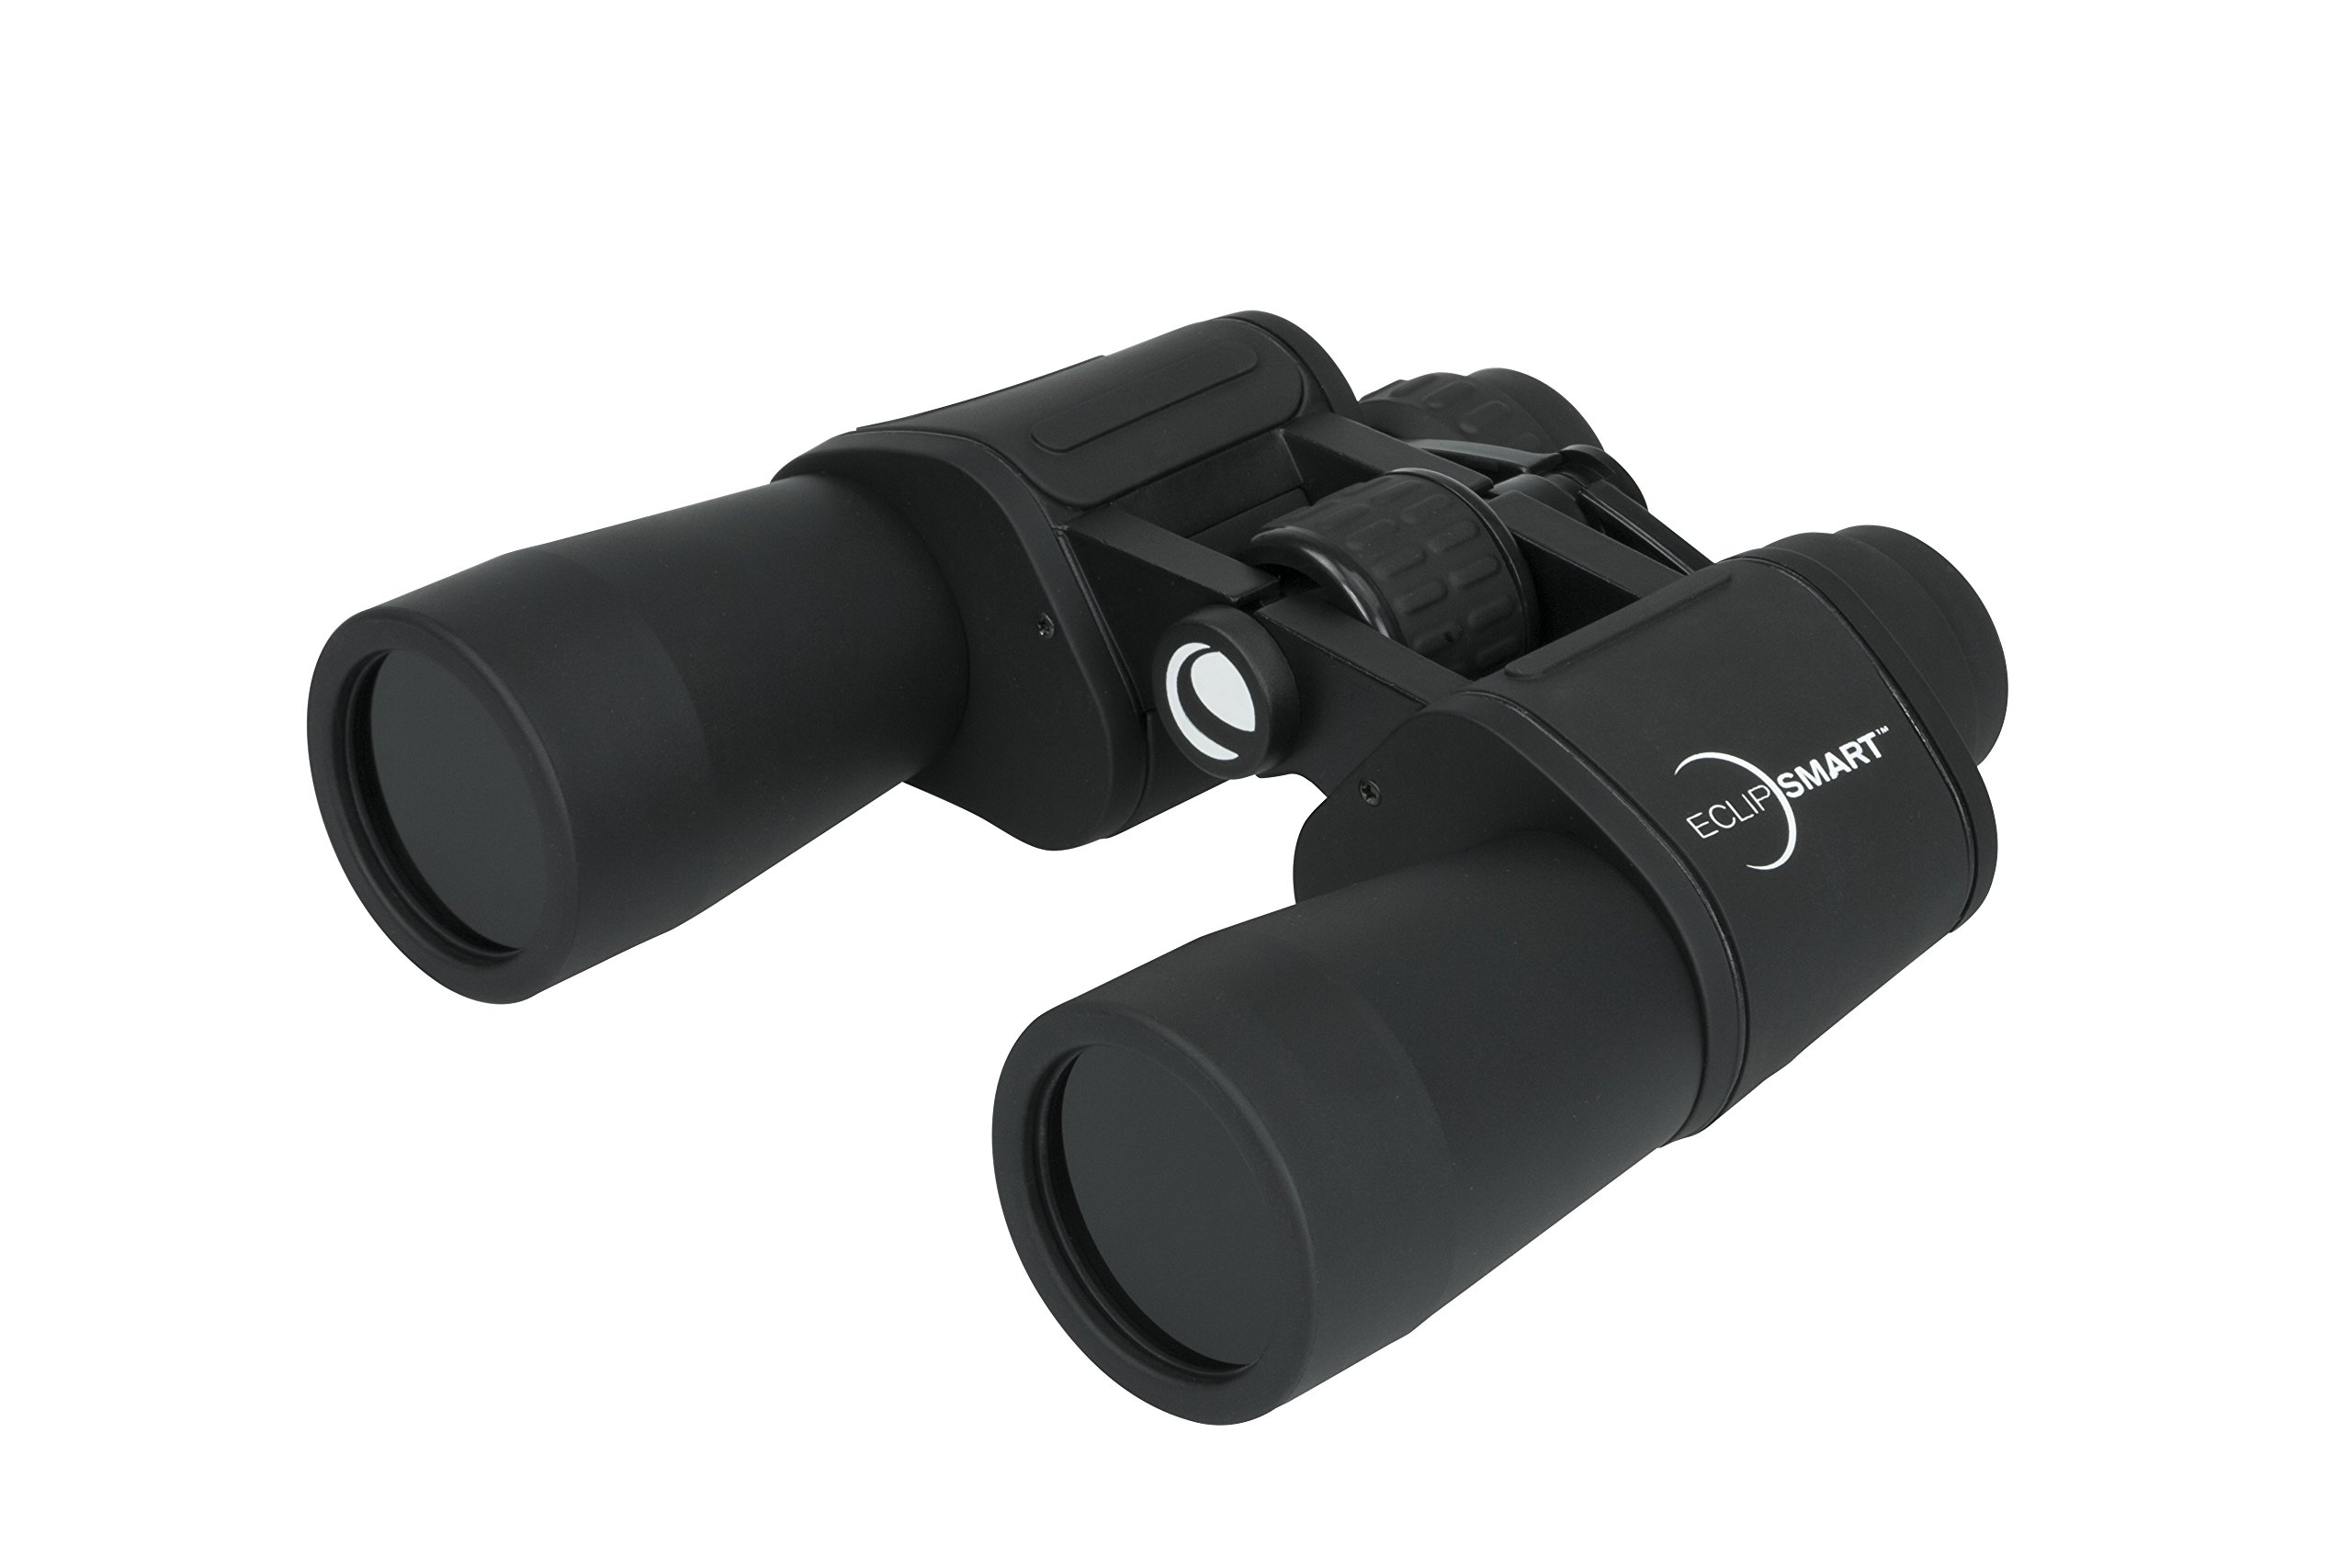 Celestron EclipSmart 2017 North American Total Solar Eclipse Binocular, Black, 10x42 (71238) by Celestron